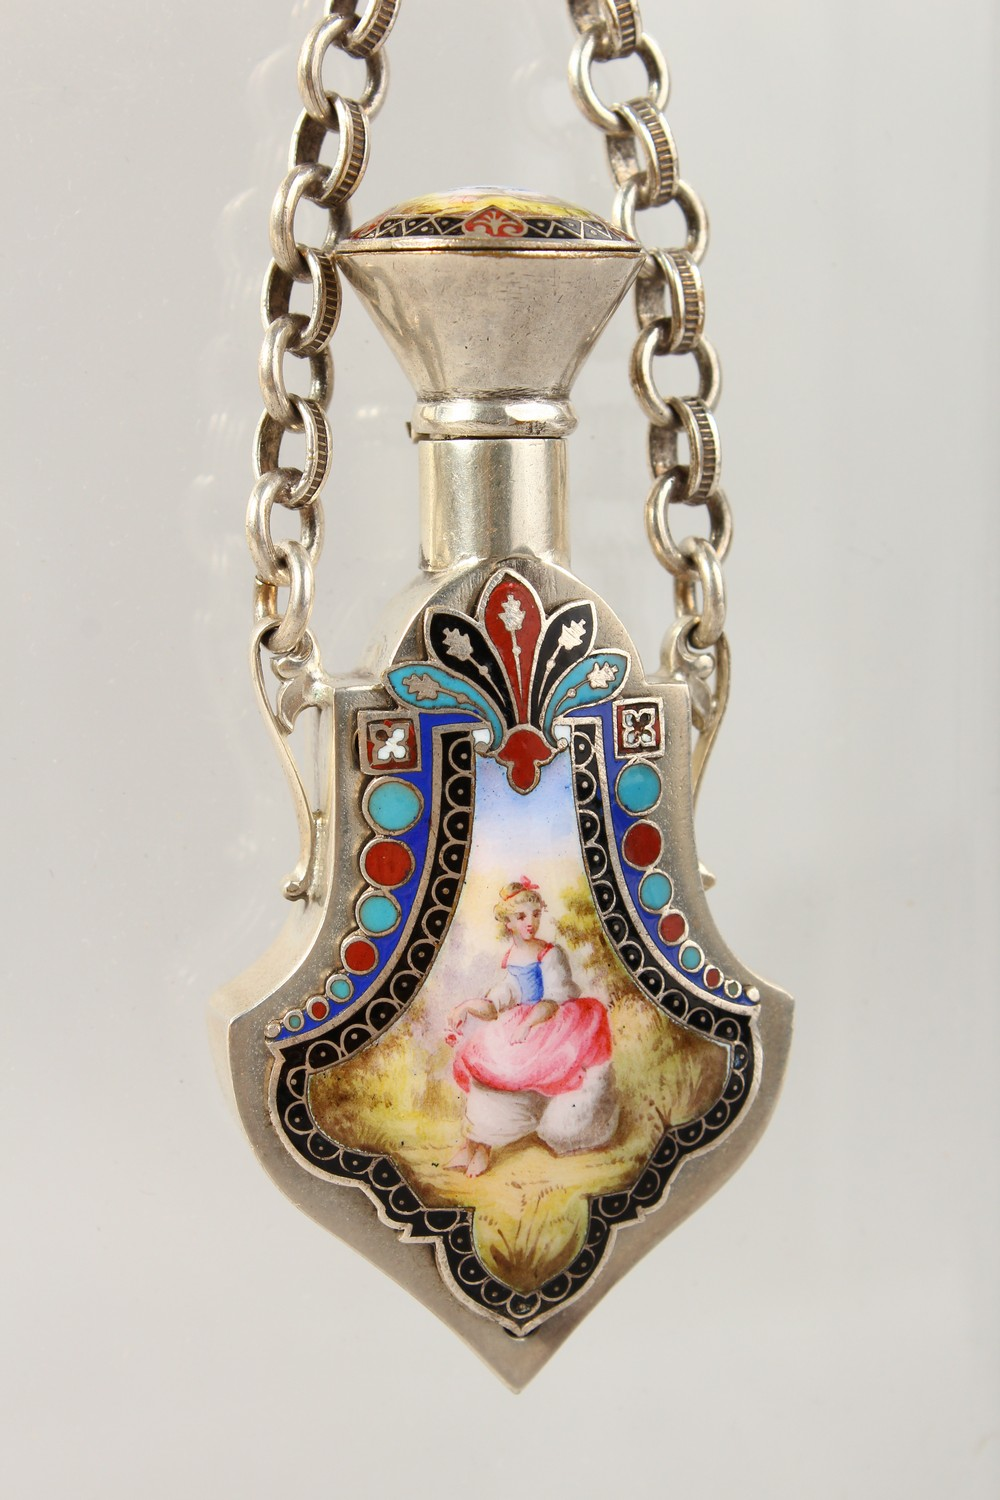 Lot 1658 - A VERY GOOD SILVER AND ENAMEL PERFUME BOTTLE CHATELAINE.